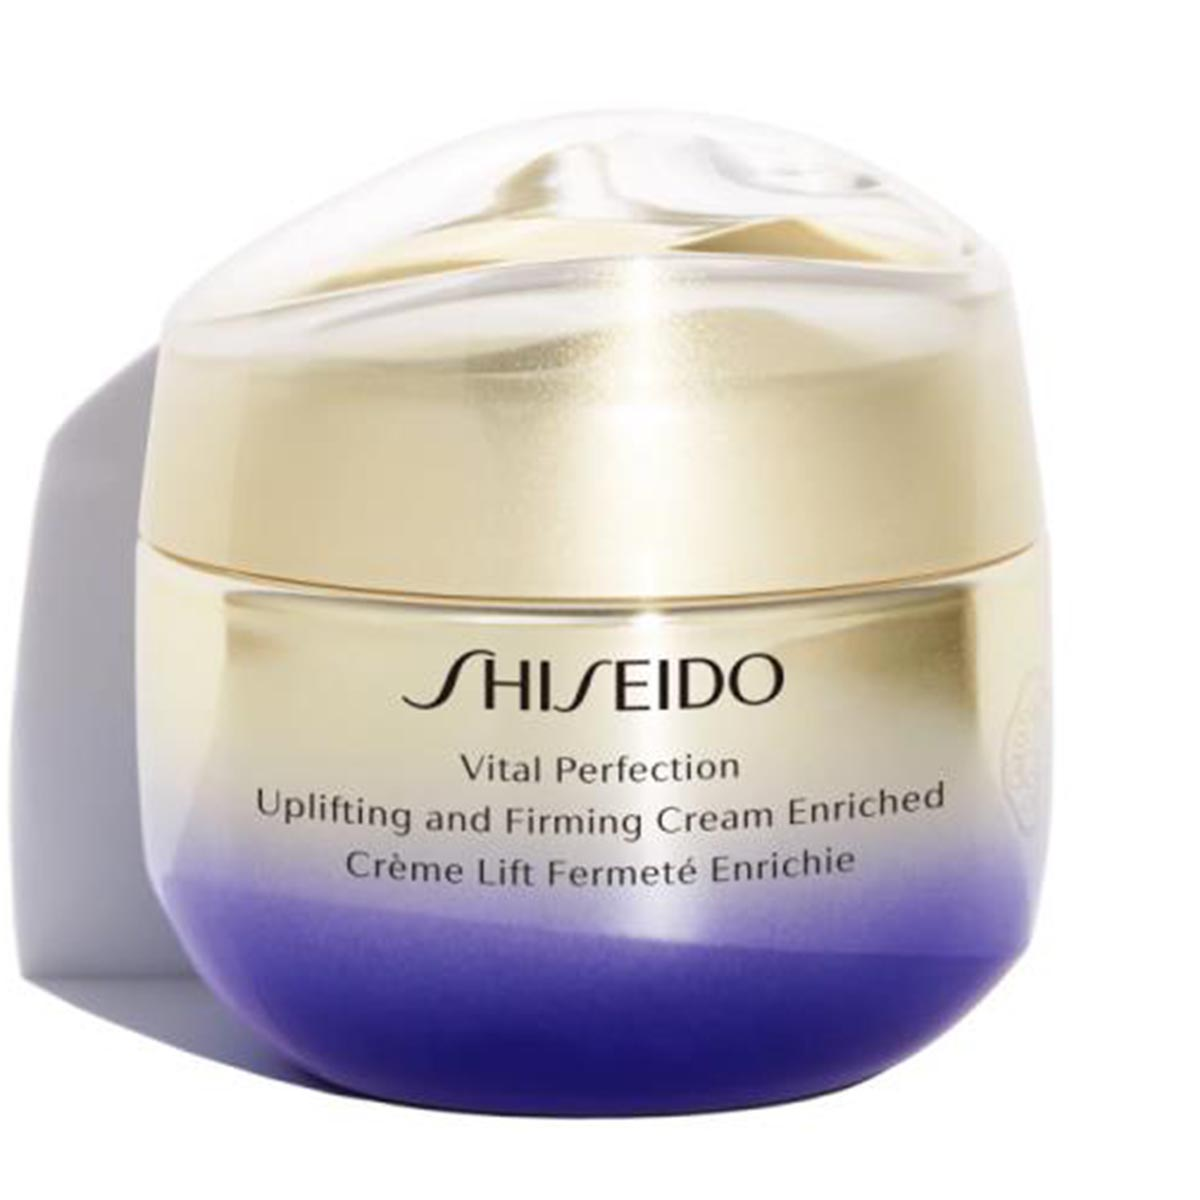 Shiseido vital perfection crema rica tester 50ml